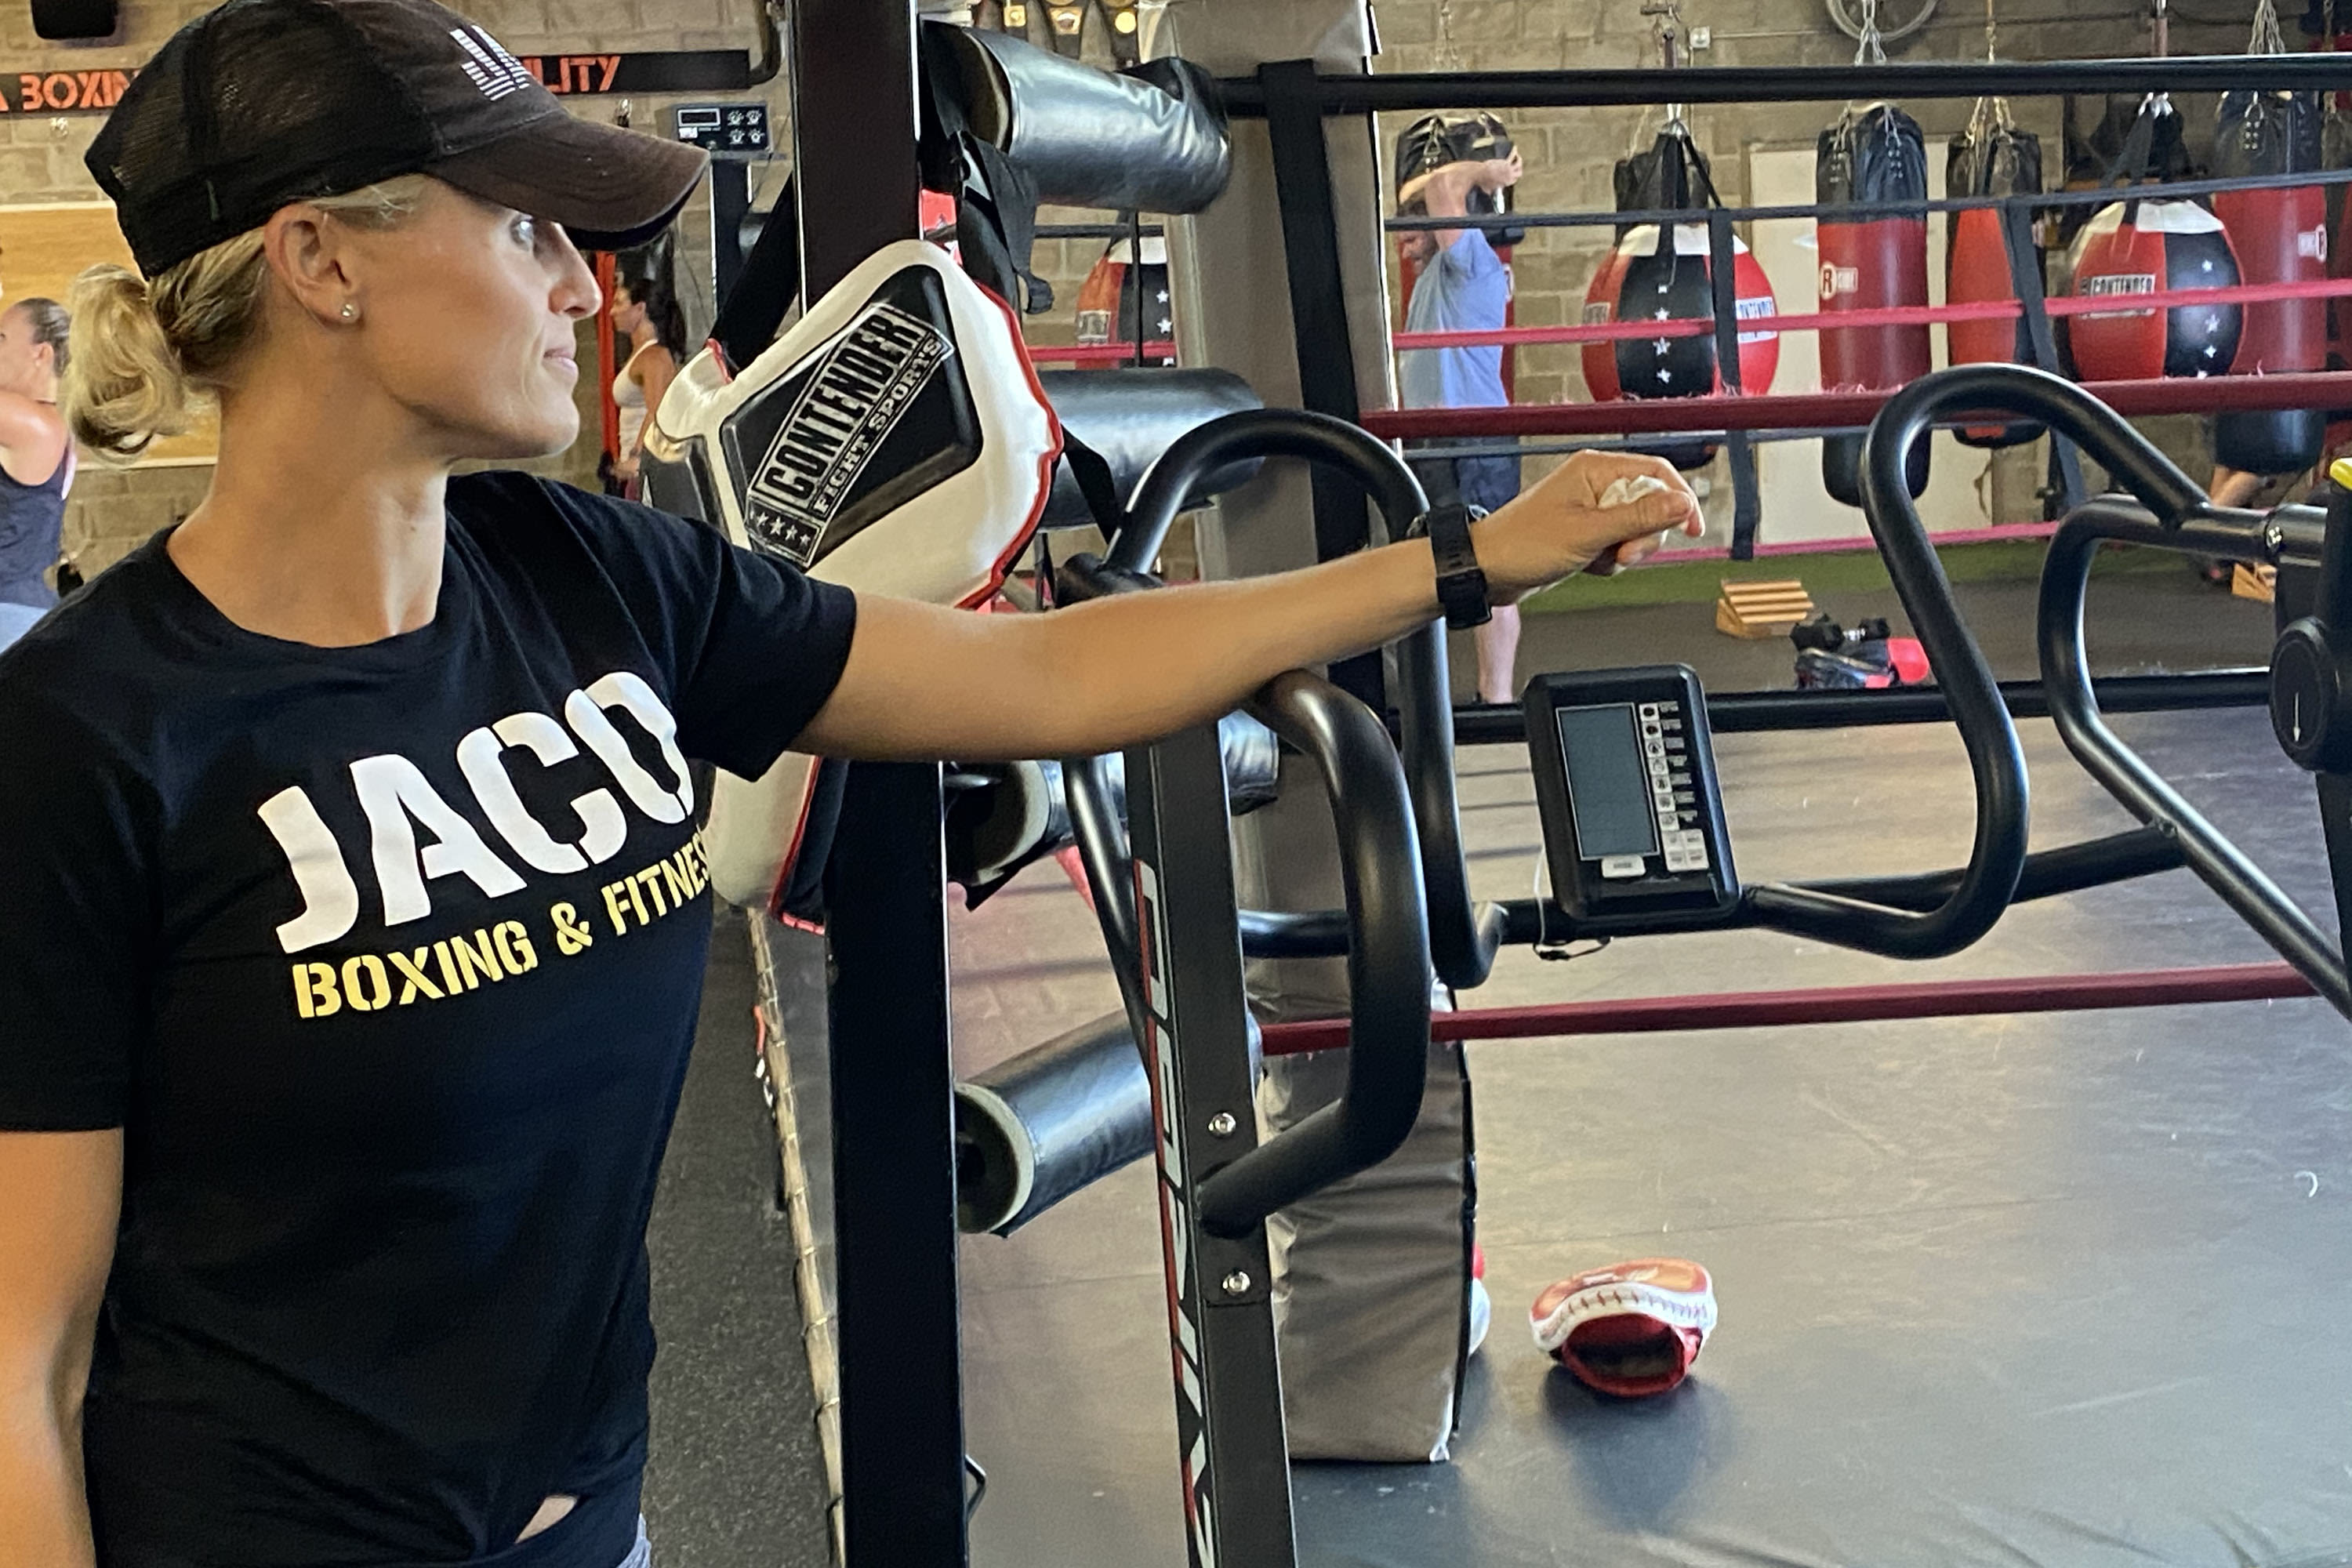 Photos Sarasota Gyms Reopen With New Covid 19 Guidelines In Place Sarasota Magazine